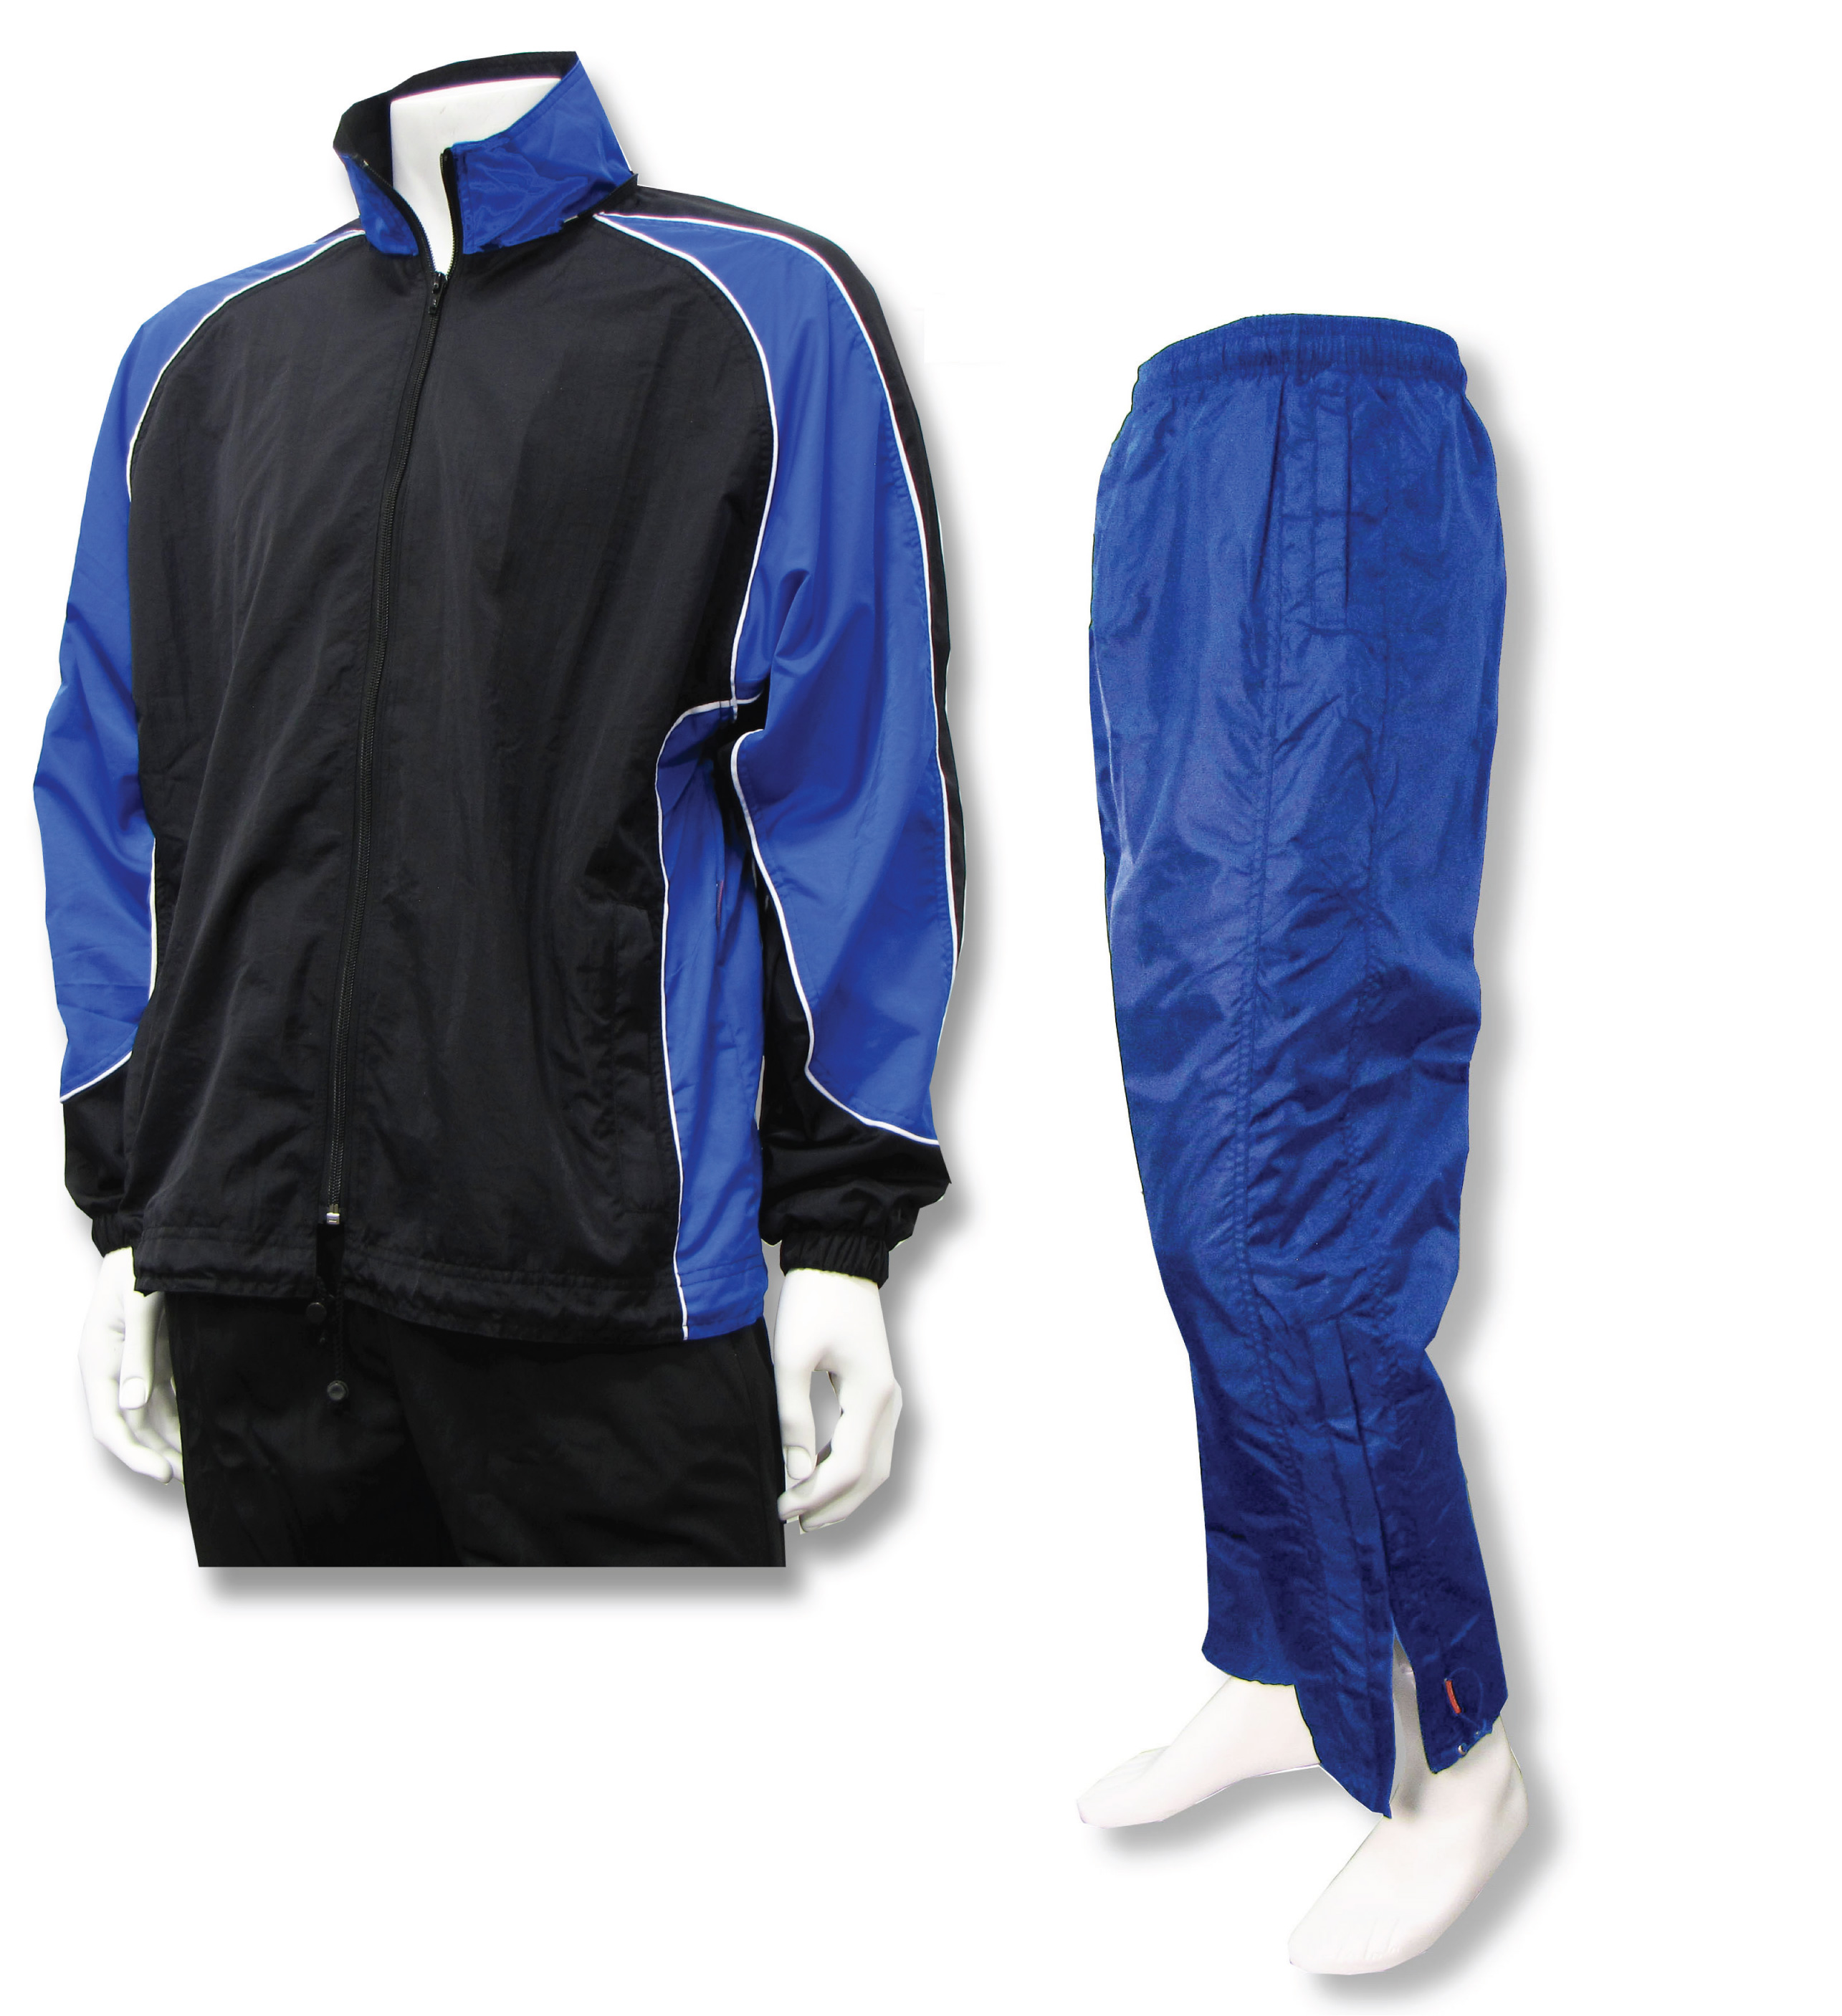 Water resistant warmup set with royal pants by Code Four Athletics